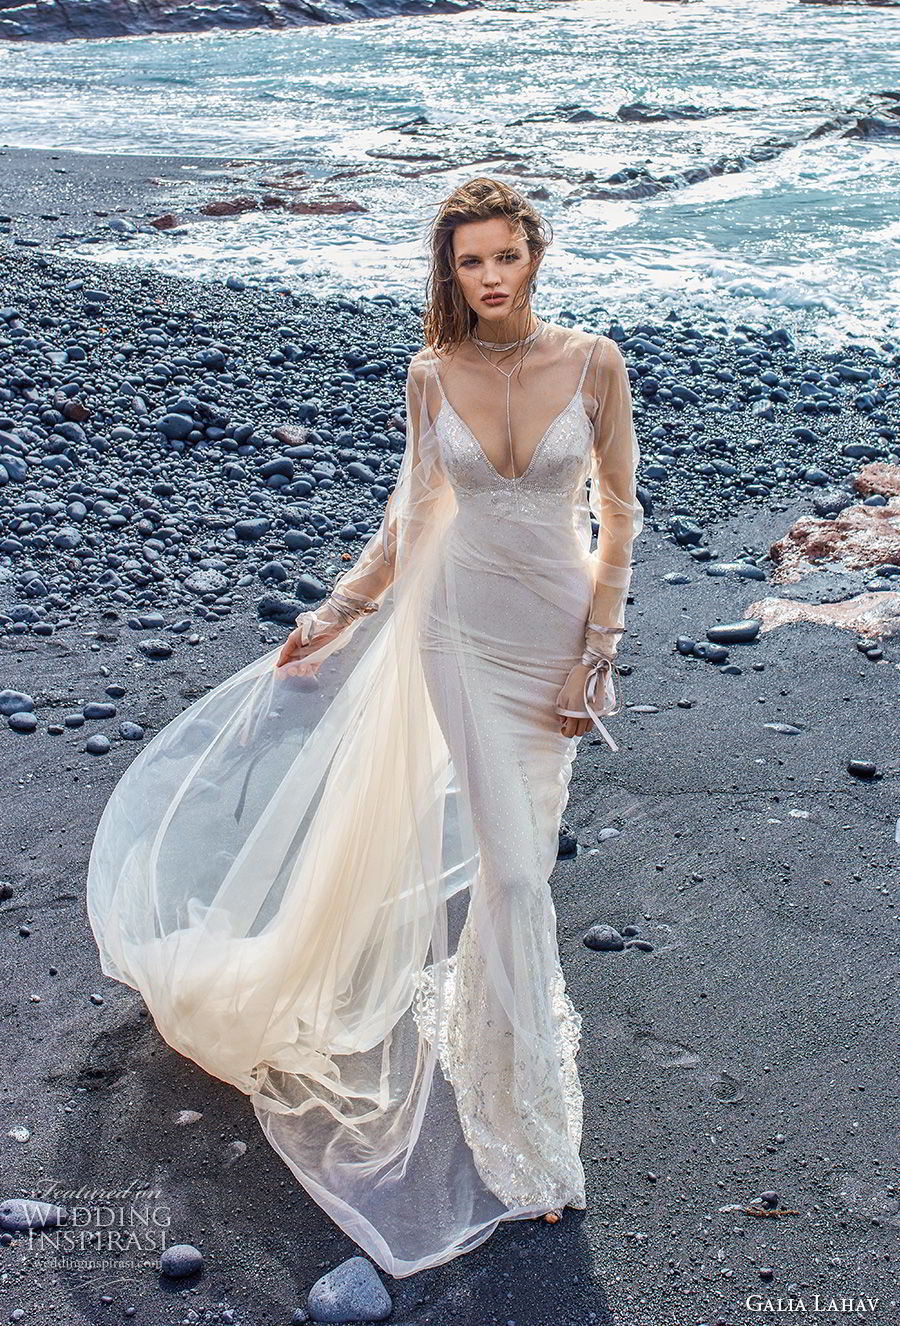 galia lahav gala 2018 bridal sleeveless thin strap v neck heavily embellished bodice elegant sheath wedding dress low scoop back sweep train (14) mv